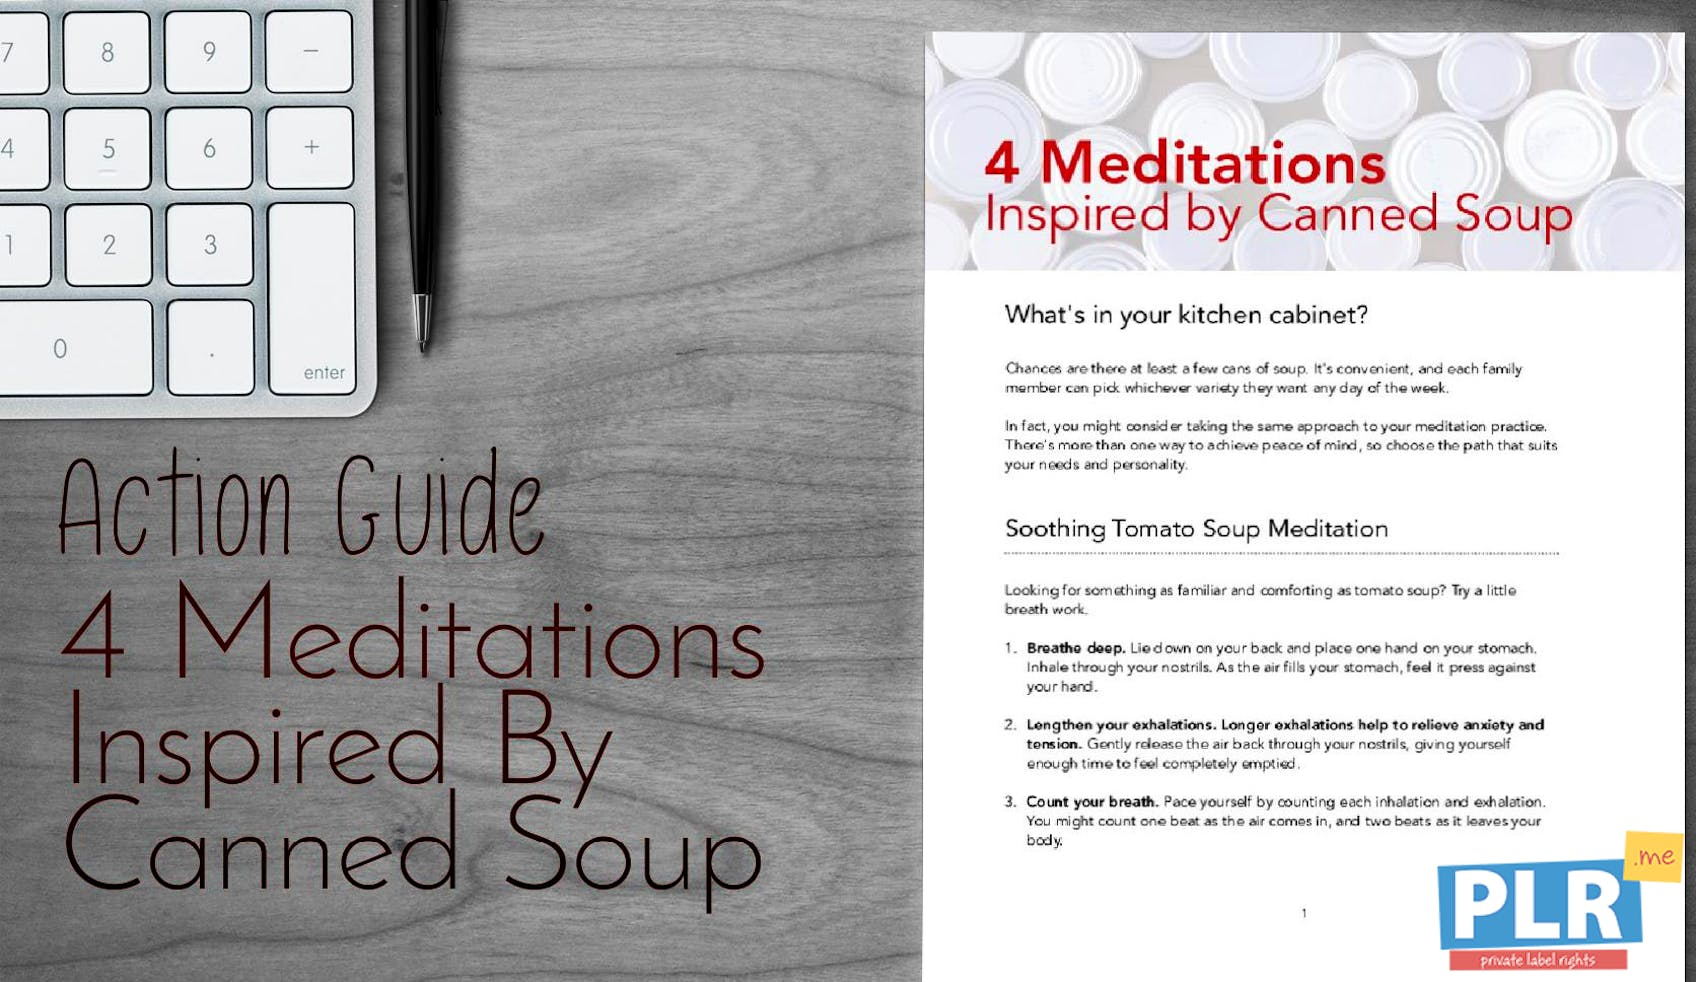 4 Meditations Inspired By Canned Soup